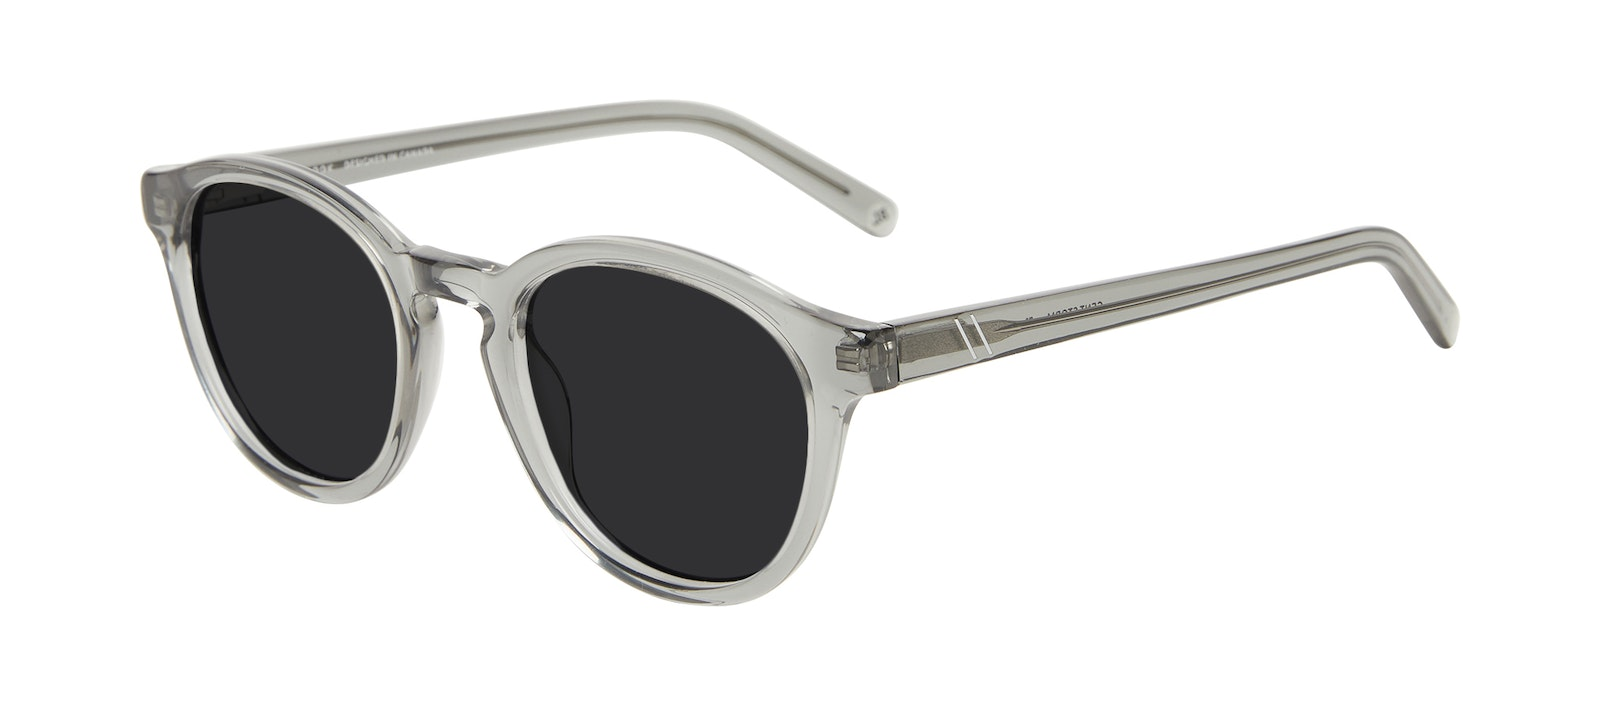 Affordable Fashion Glasses Round Sunglasses Men Gent Storm Tilt